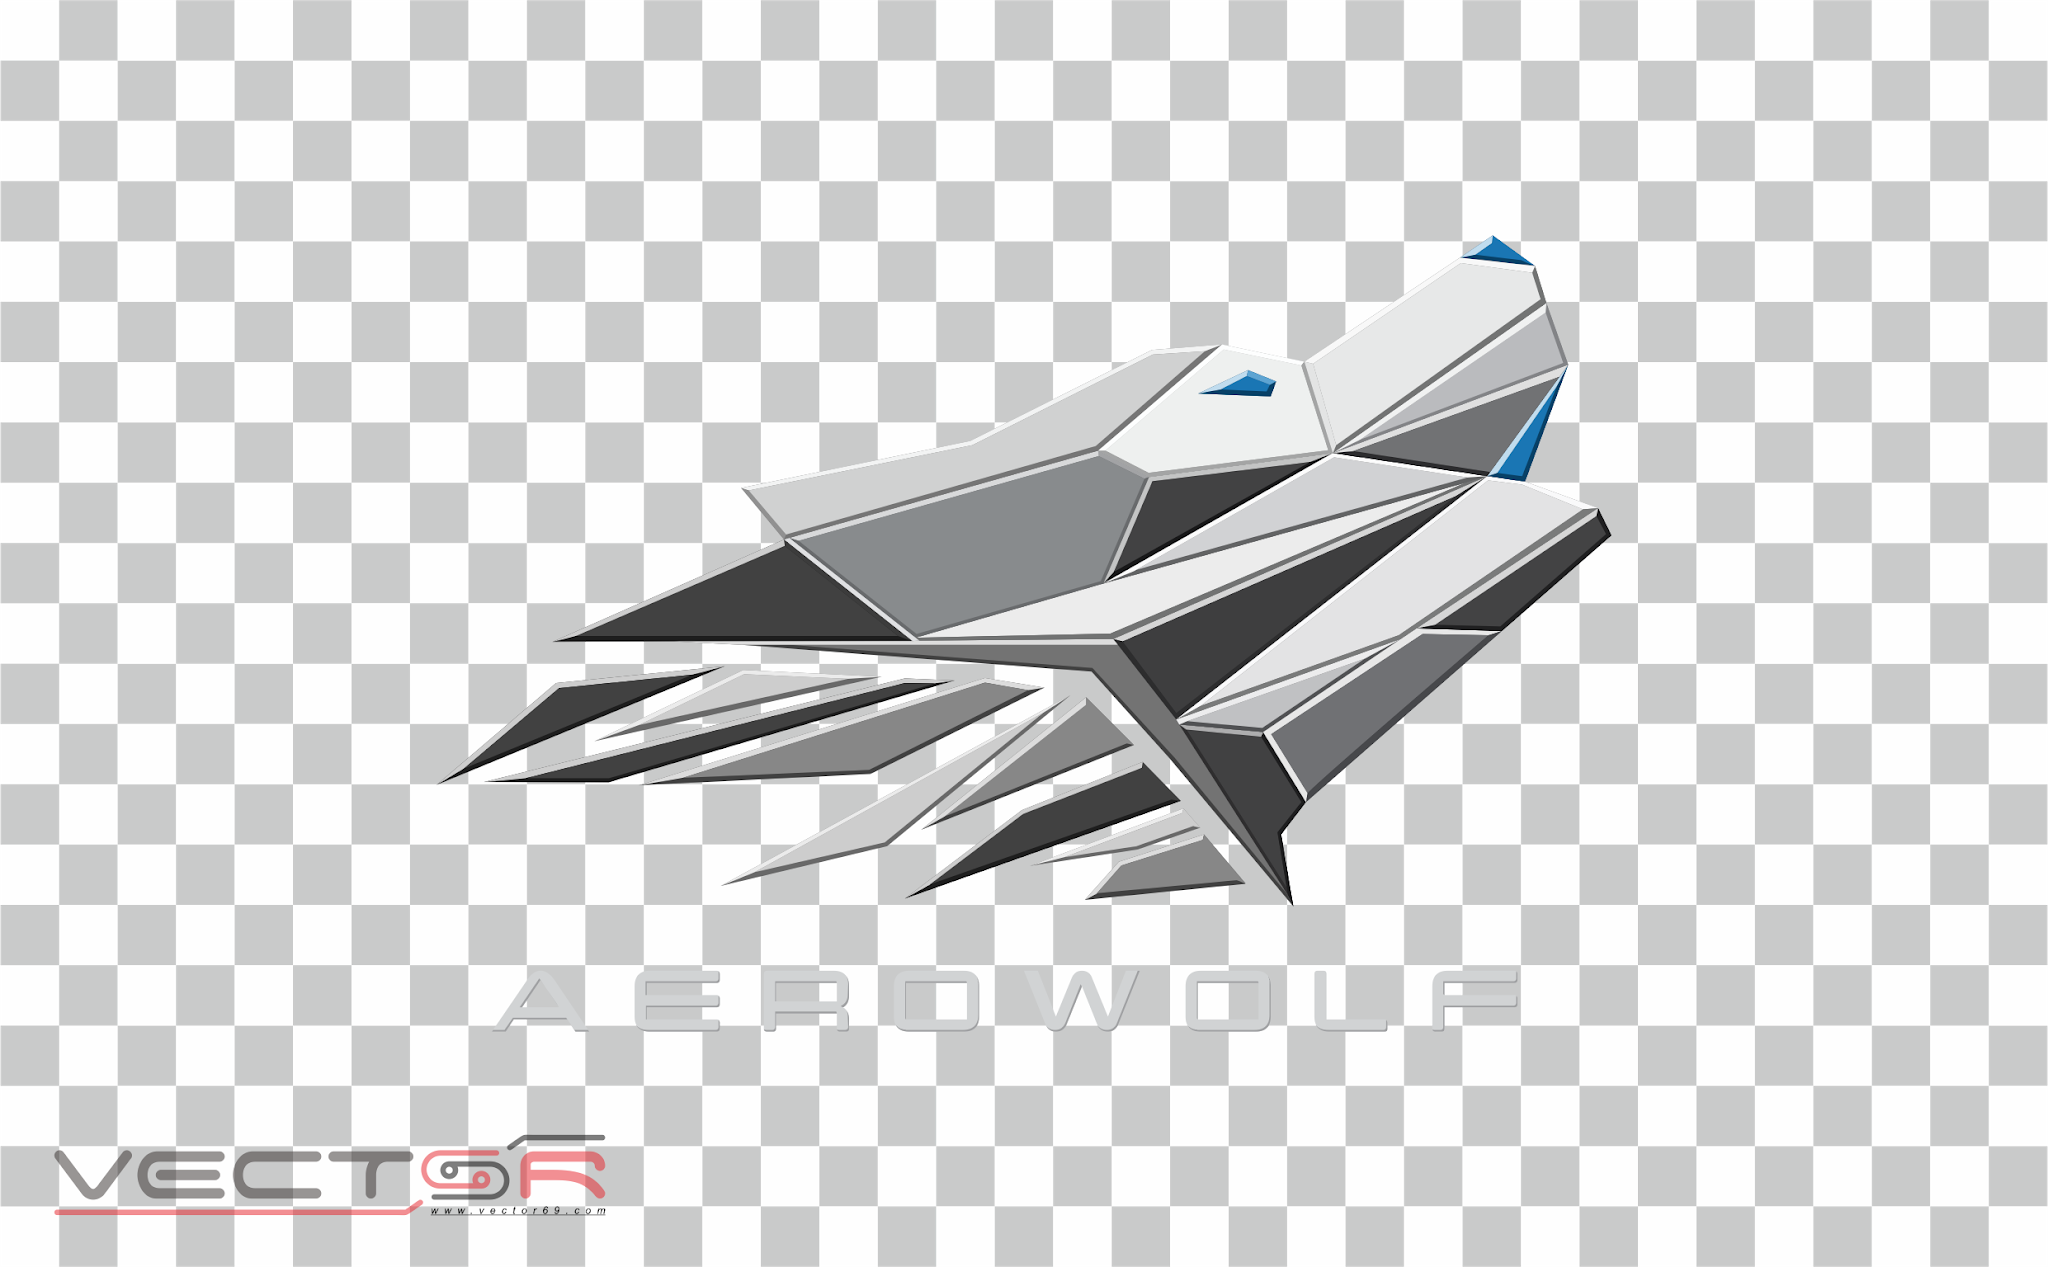 Aerowolf Pro Team Logo - Download Vector File PNG (Portable Network Graphics)